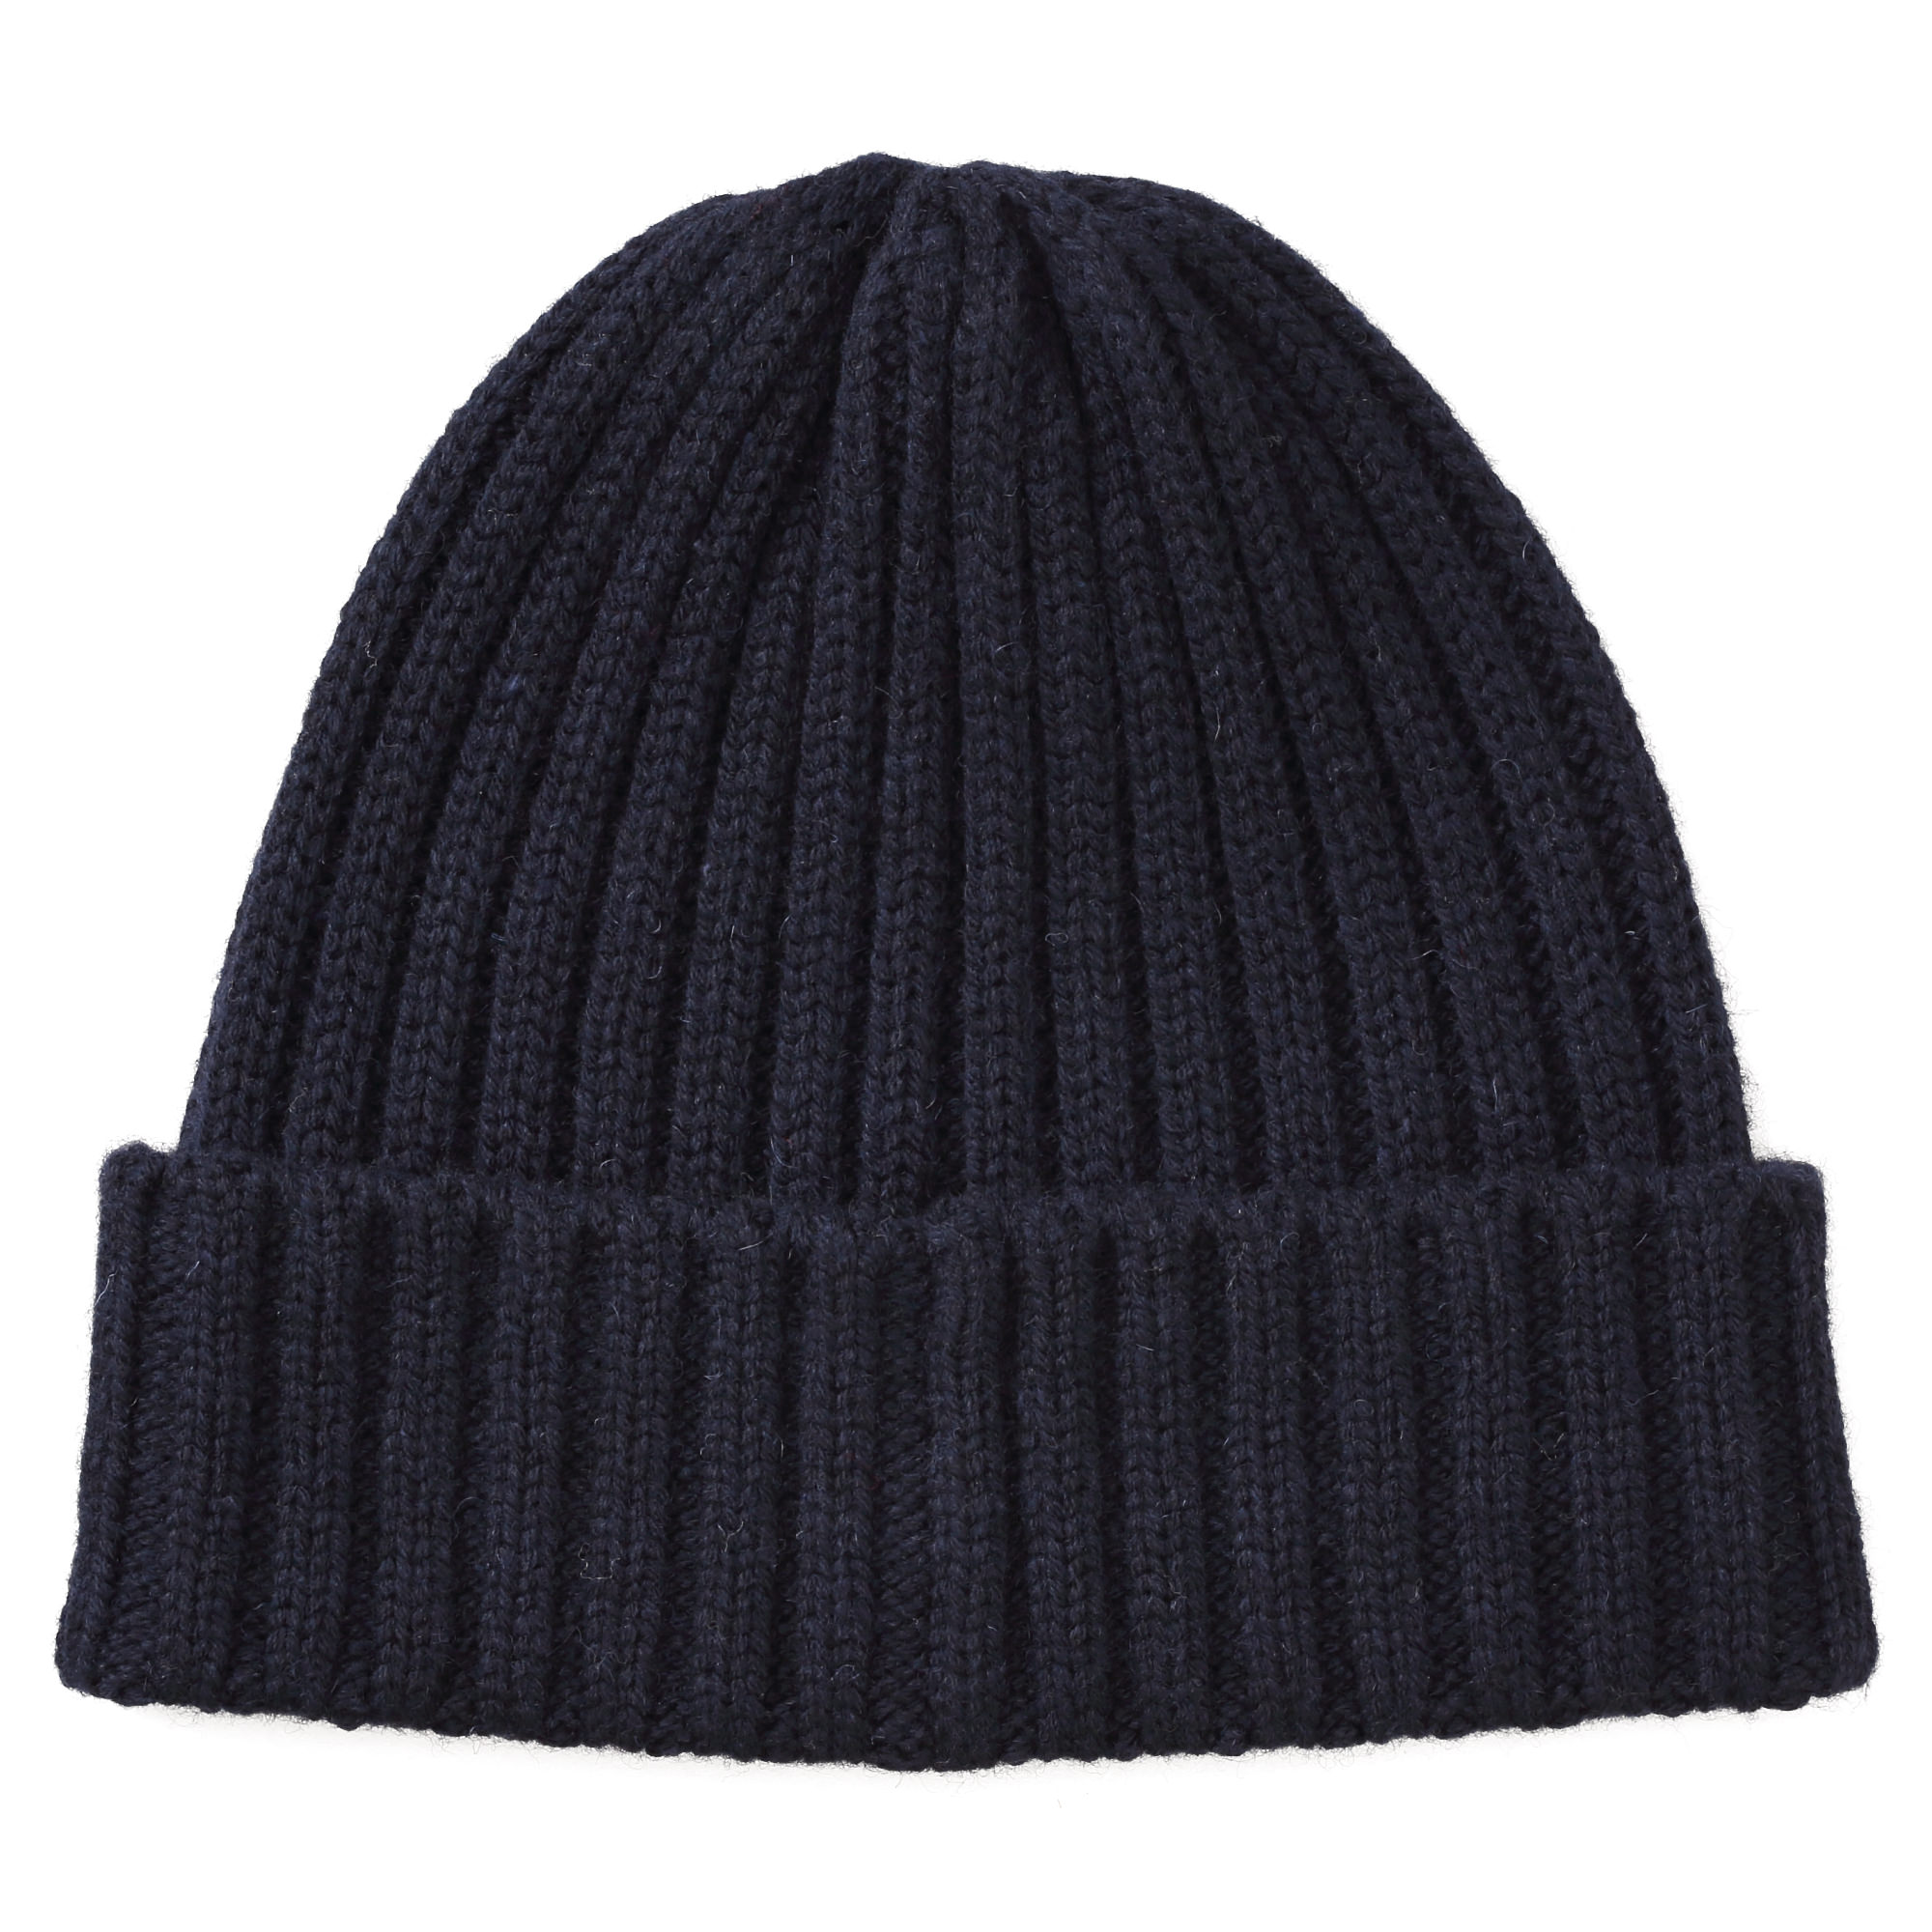 Wool Less Itchiness Ribbed Washable Watch Cap Navy U.P. $29 (Less 10%)